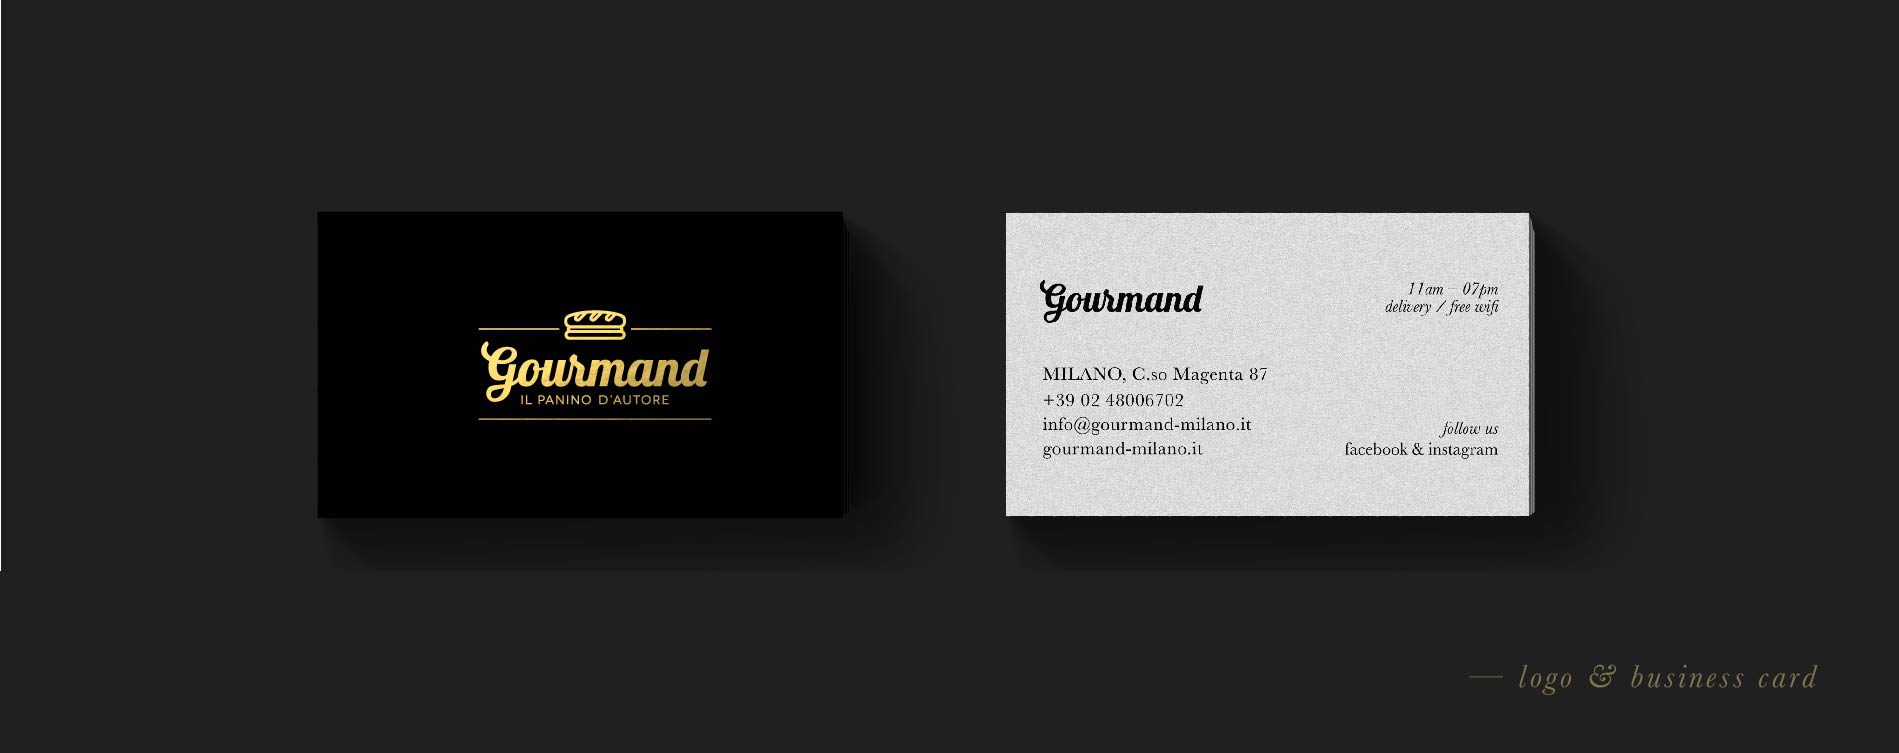 02-Gourmand-panino-autore-business-card